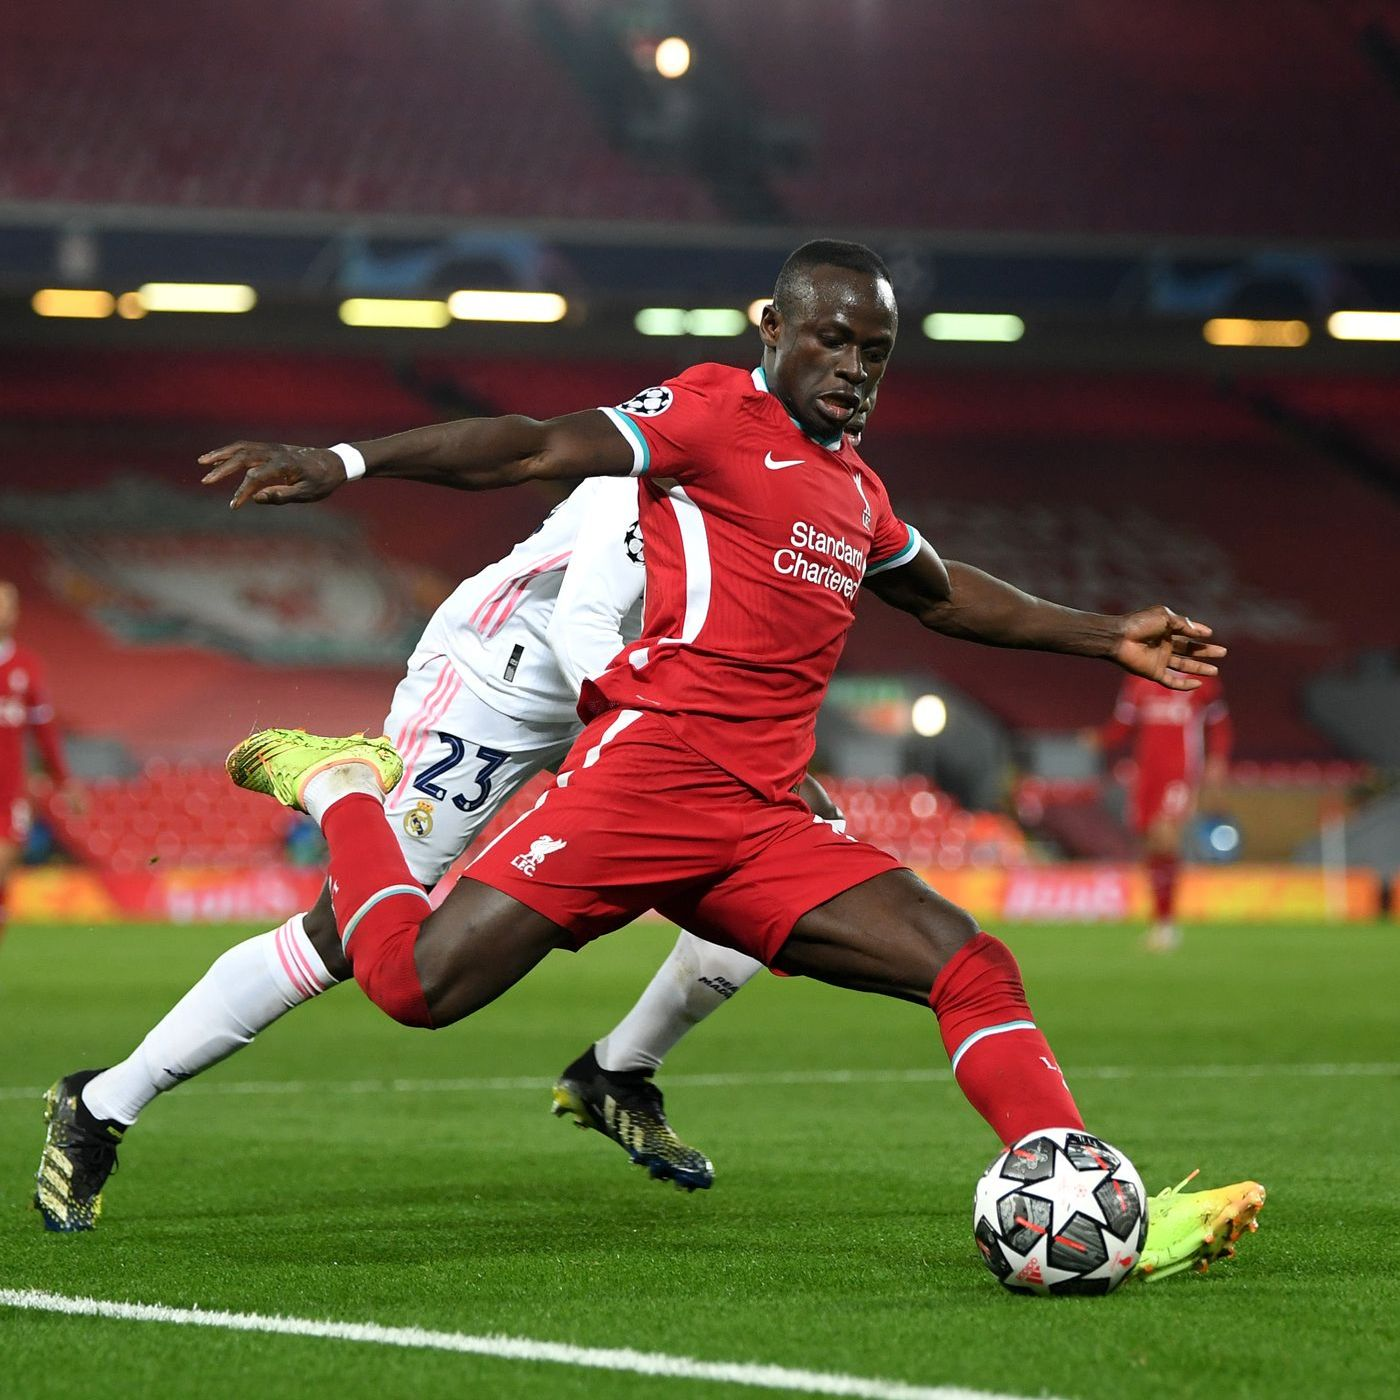 Allez Les Rouges: Mane's drop in confidence, missed Madrid chance, and Stevie's role in developing young local talent